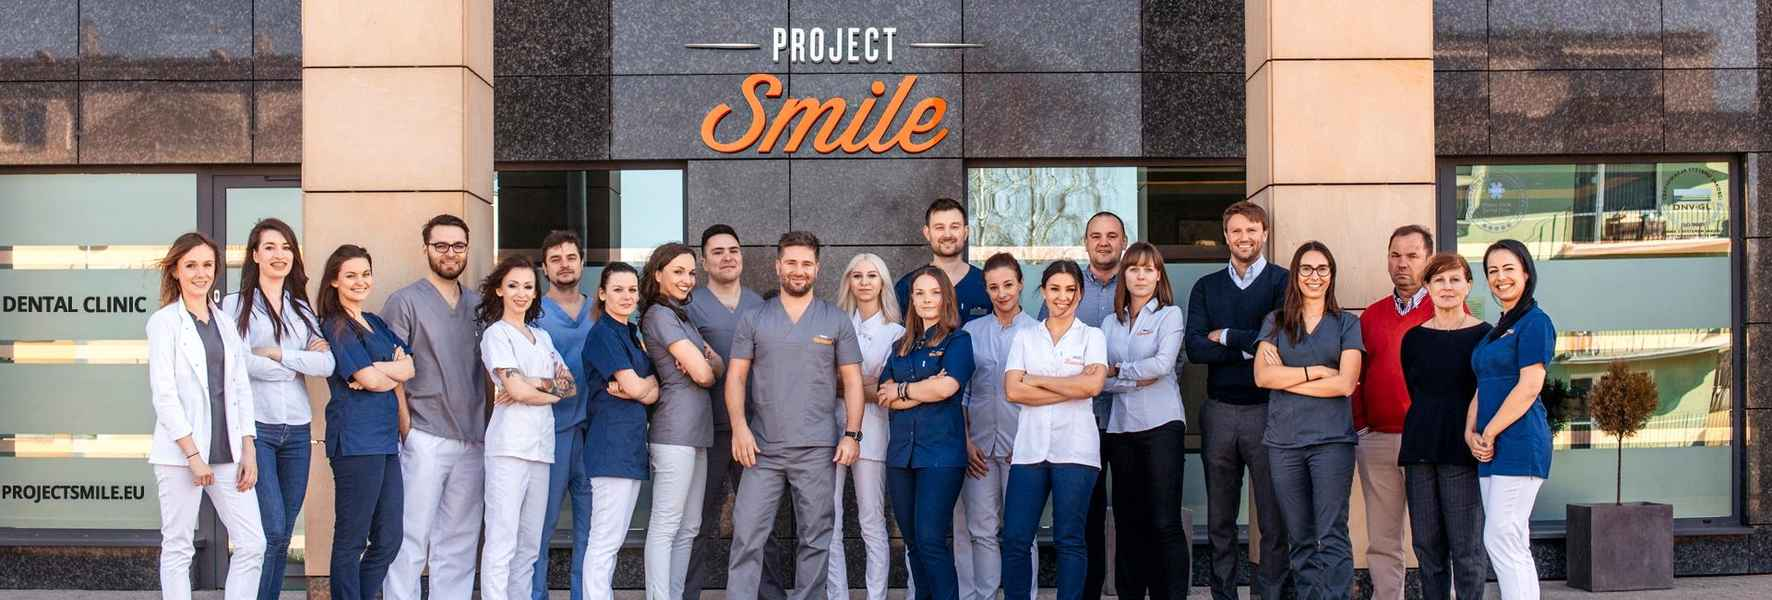 Project Smile Dental Clinic